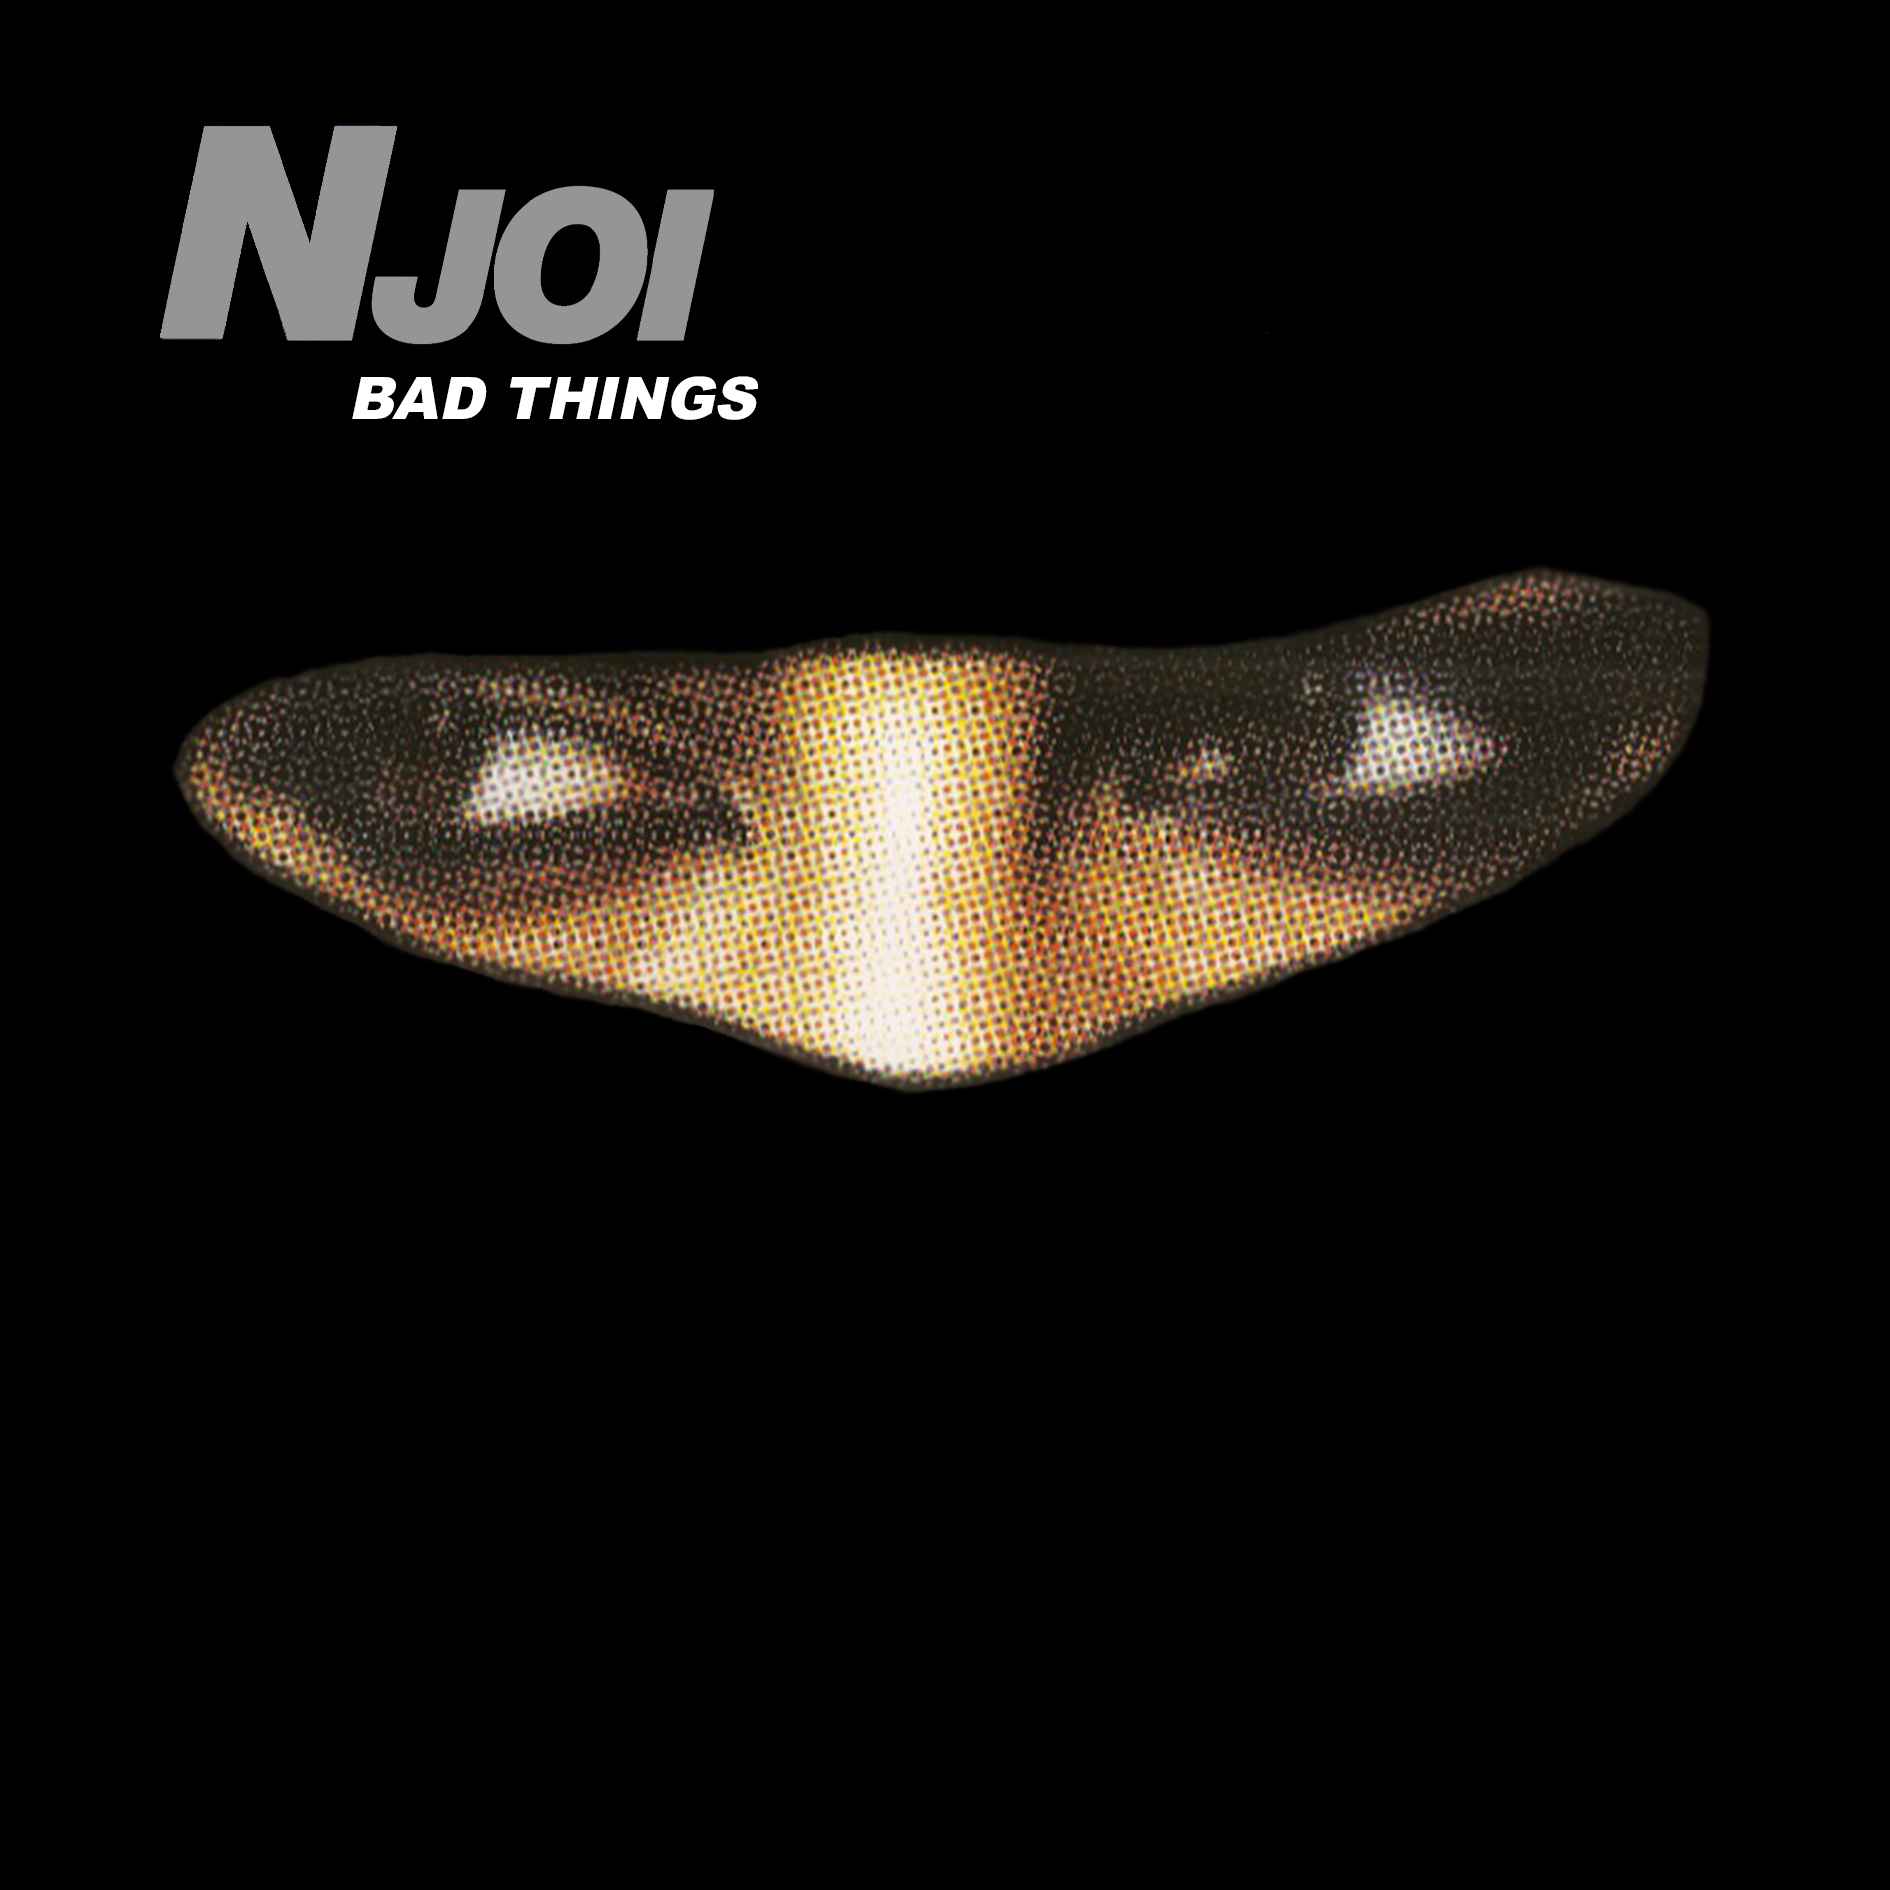 N-Joi Bad Things